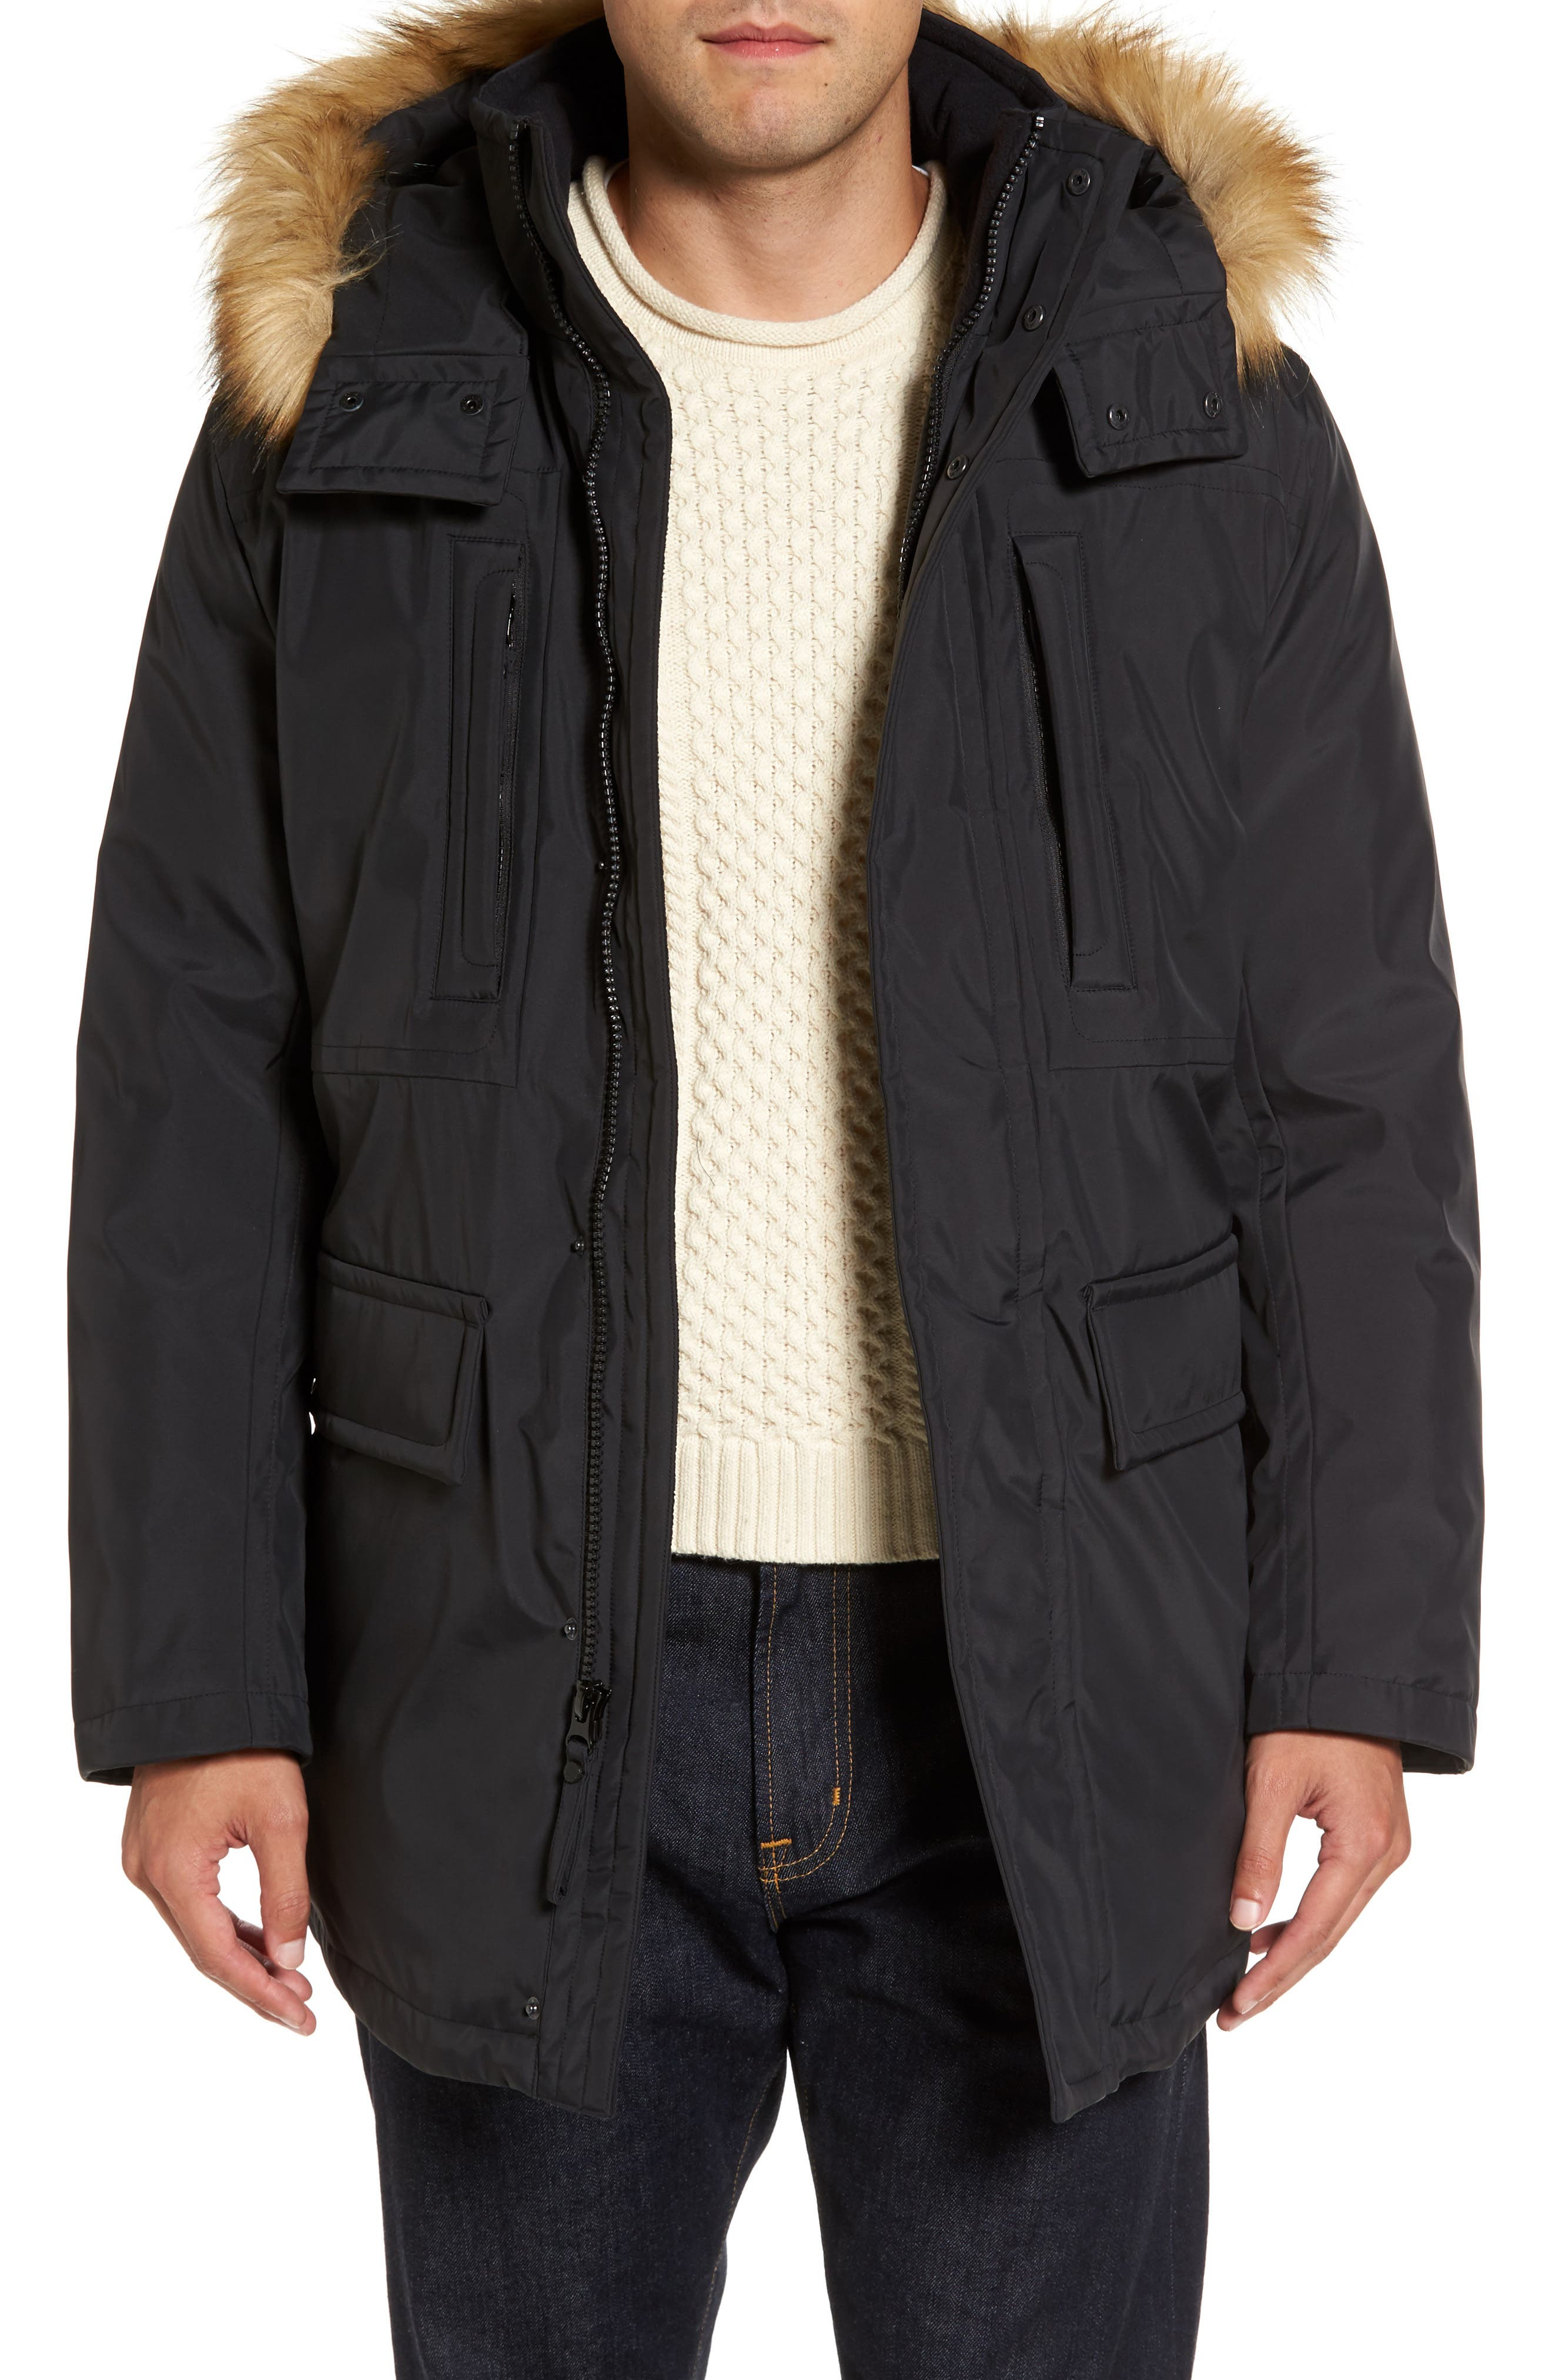 Alternate Image 1 Selected - Marc New York Down Jacket with Faux Fur Trim